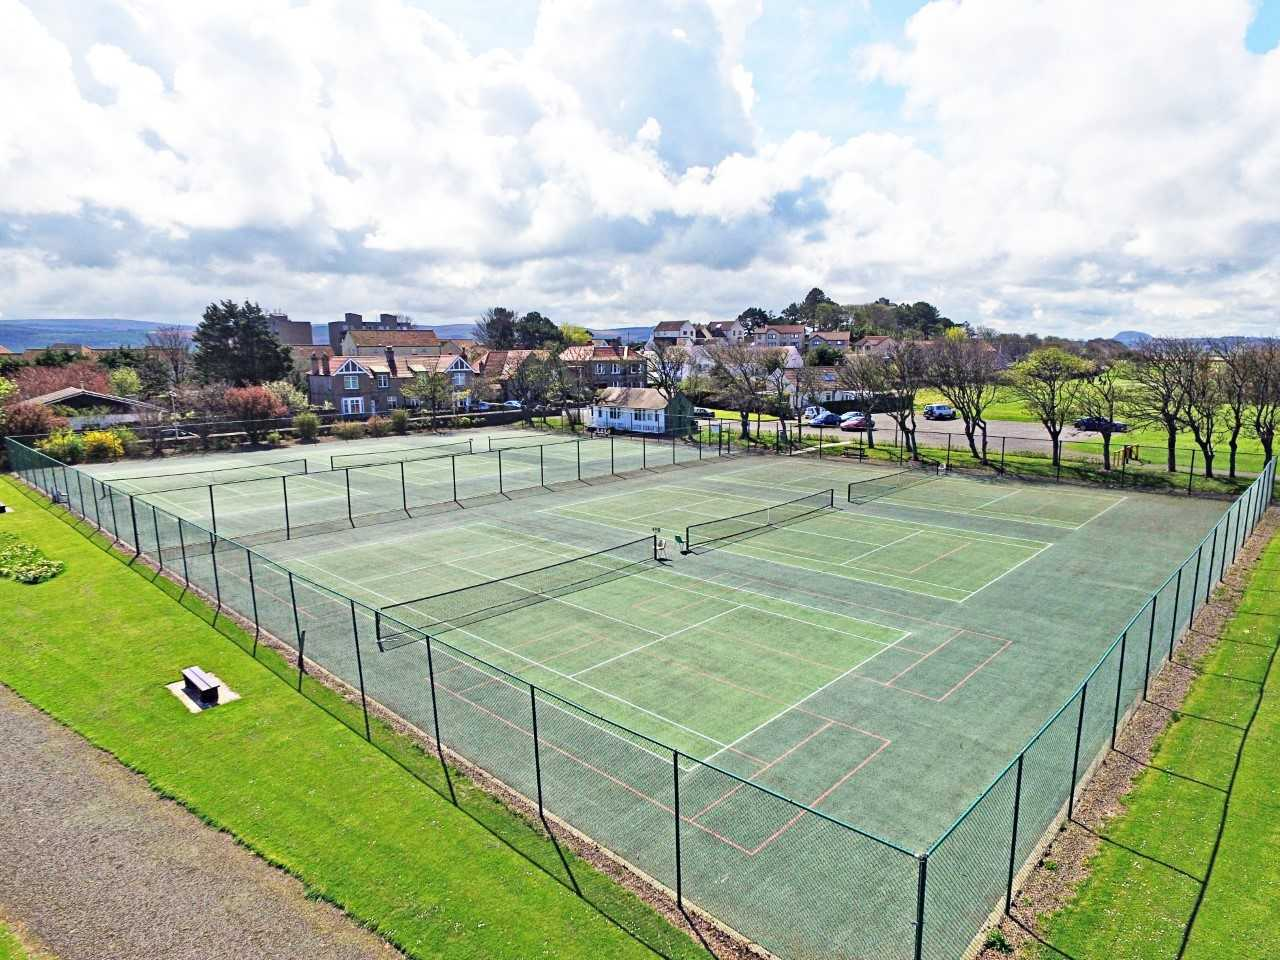 Plans are being drawn up to see improvements made at Dunbar's tennis courts